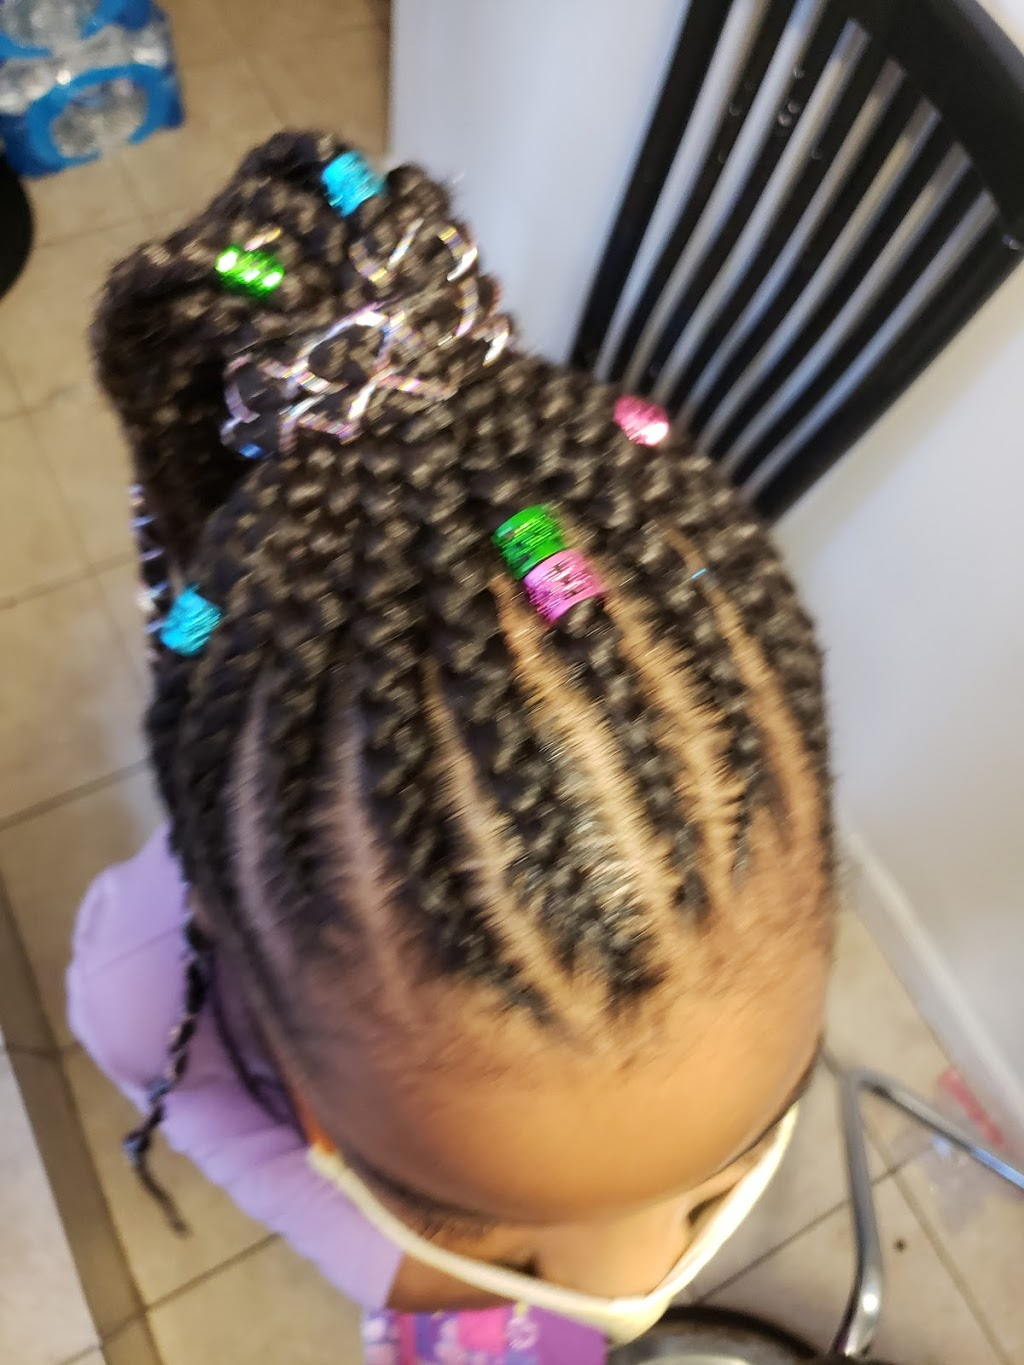 Flakky African Hair Braiding - hair care  | Photo 4 of 10 | Address: 253 Broad St, Staten Island, NY 10304, USA | Phone: (347) 371-3645